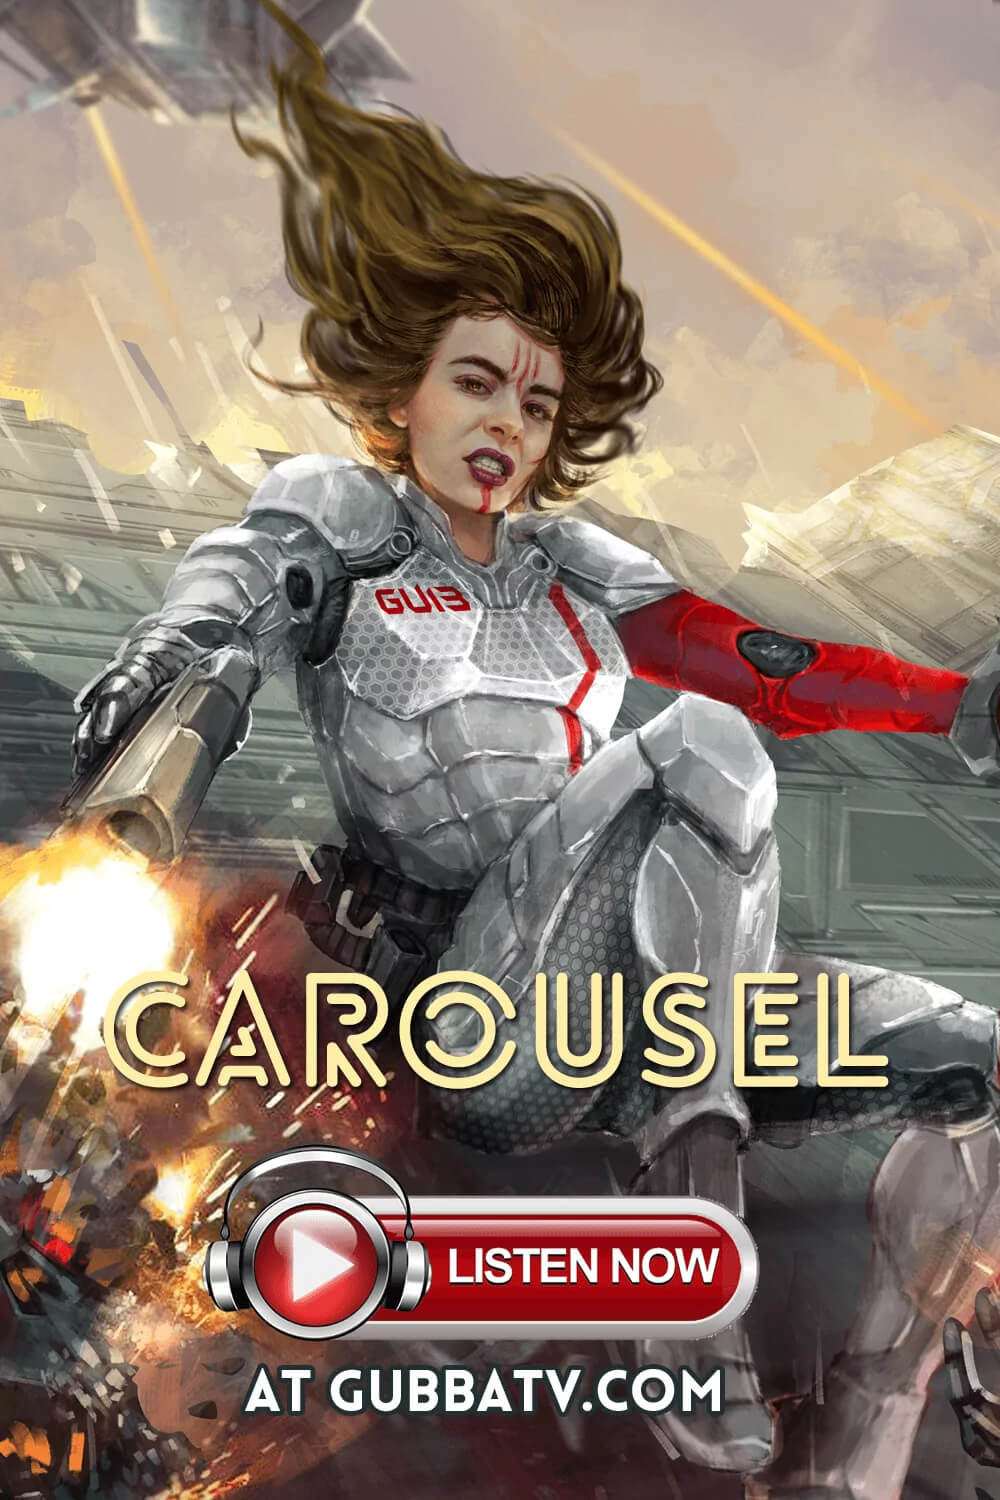 Carousel - Thrill Ride Song